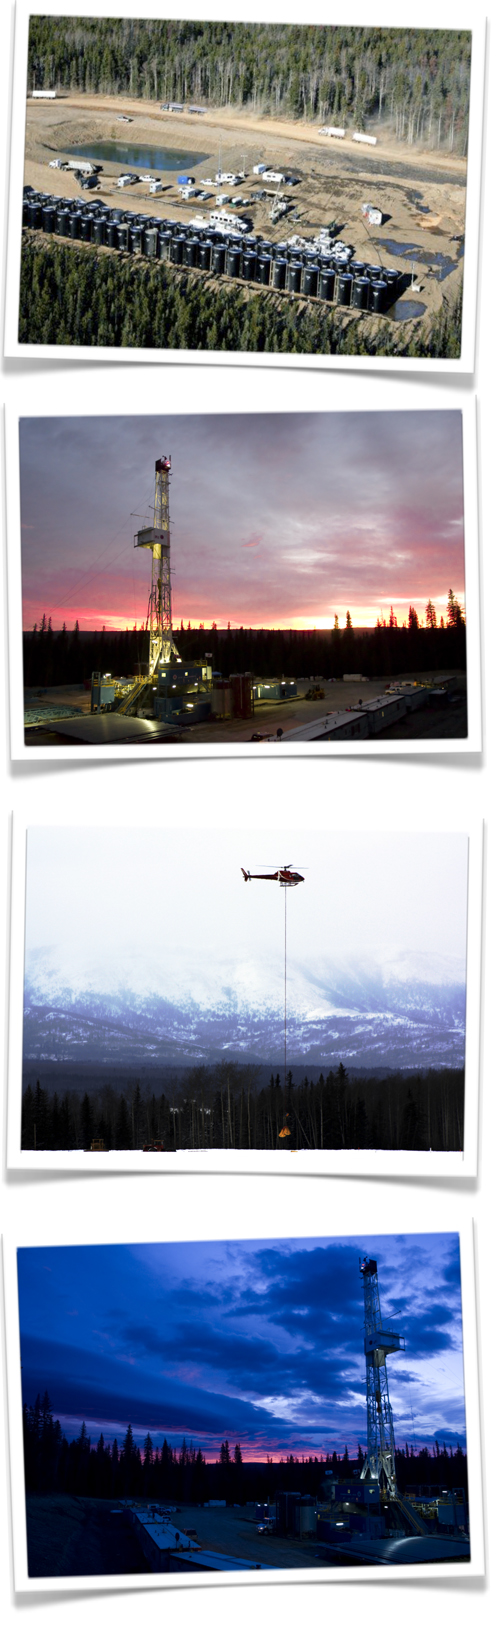 Oilfield Photos